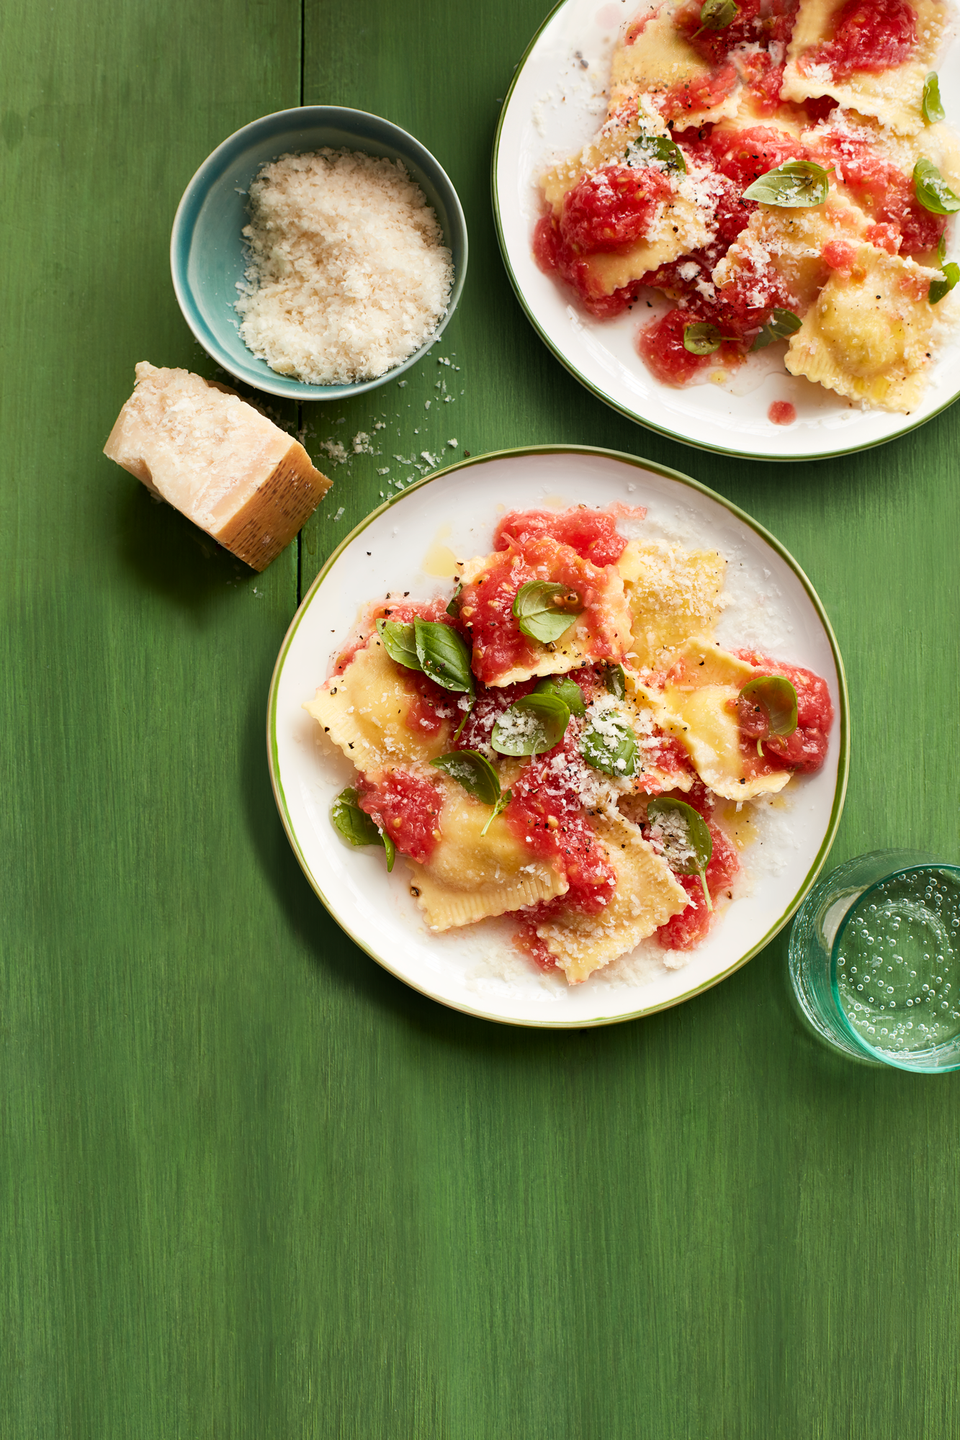 """<p>All the best hallmarks of Italian comfort food—ripe tomatoes, fresh basil, and plenty of cheese—ensure that this crowdpleaser belongs in your cold-weather dinner rotation. Even better, the whole thing comes in at less than $10 for four servings. </p><p><a href=""""https://www.prevention.com/food-nutrition/recipes/a33958993/ravioli-no-cook-tomato-sauce-recipe/"""" rel=""""nofollow noopener"""" target=""""_blank"""" data-ylk=""""slk:Get the recipe »"""" class=""""link rapid-noclick-resp""""><em><strong>Get the recipe <strong>»</strong></strong></em></a></p>"""